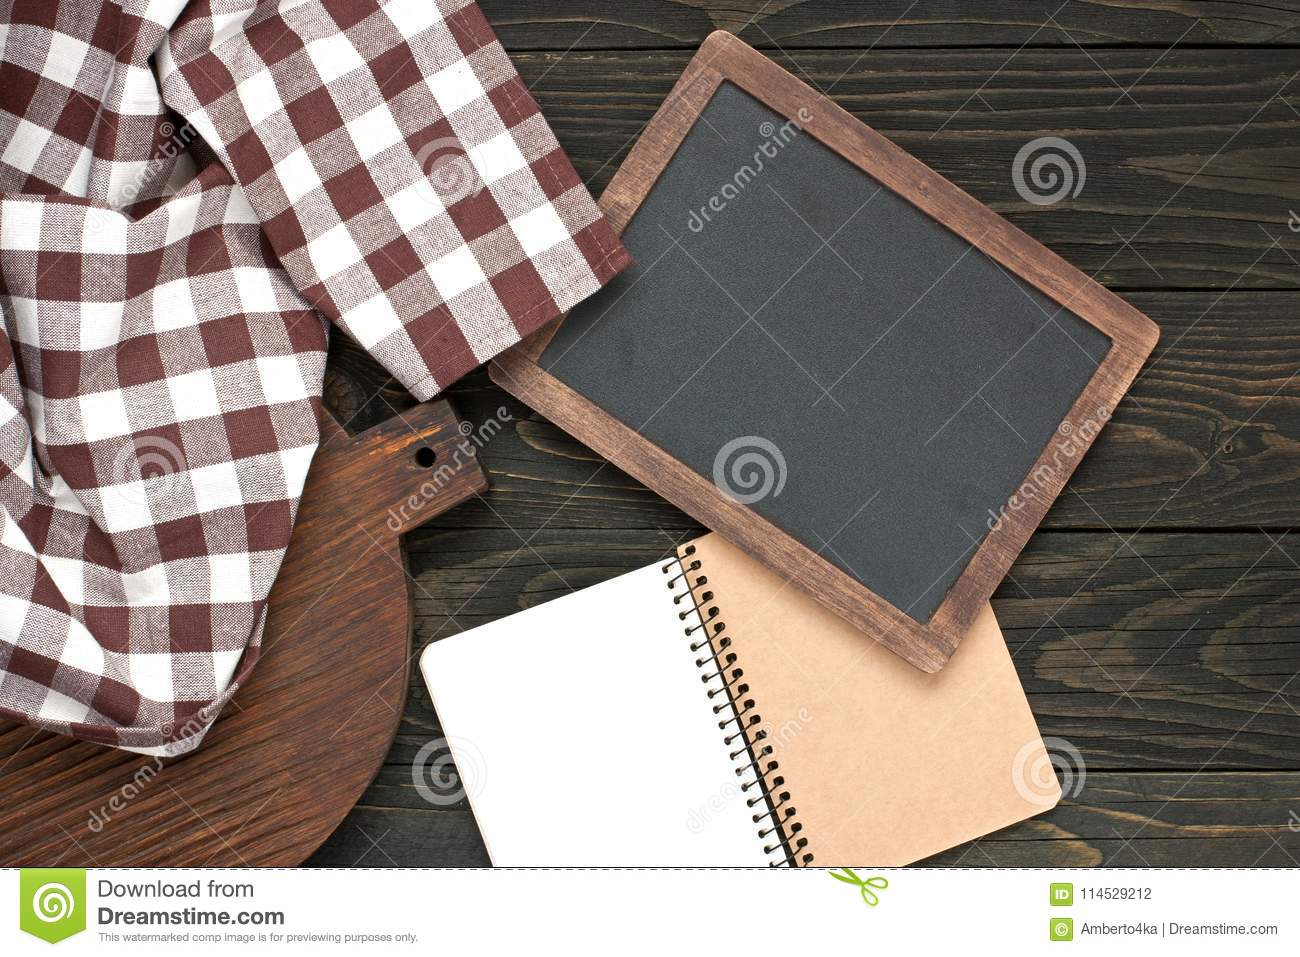 Background with kitchen board towel and recipe notebook stock photo download background with kitchen board towel and recipe notebook stock photo image of dark forumfinder Image collections